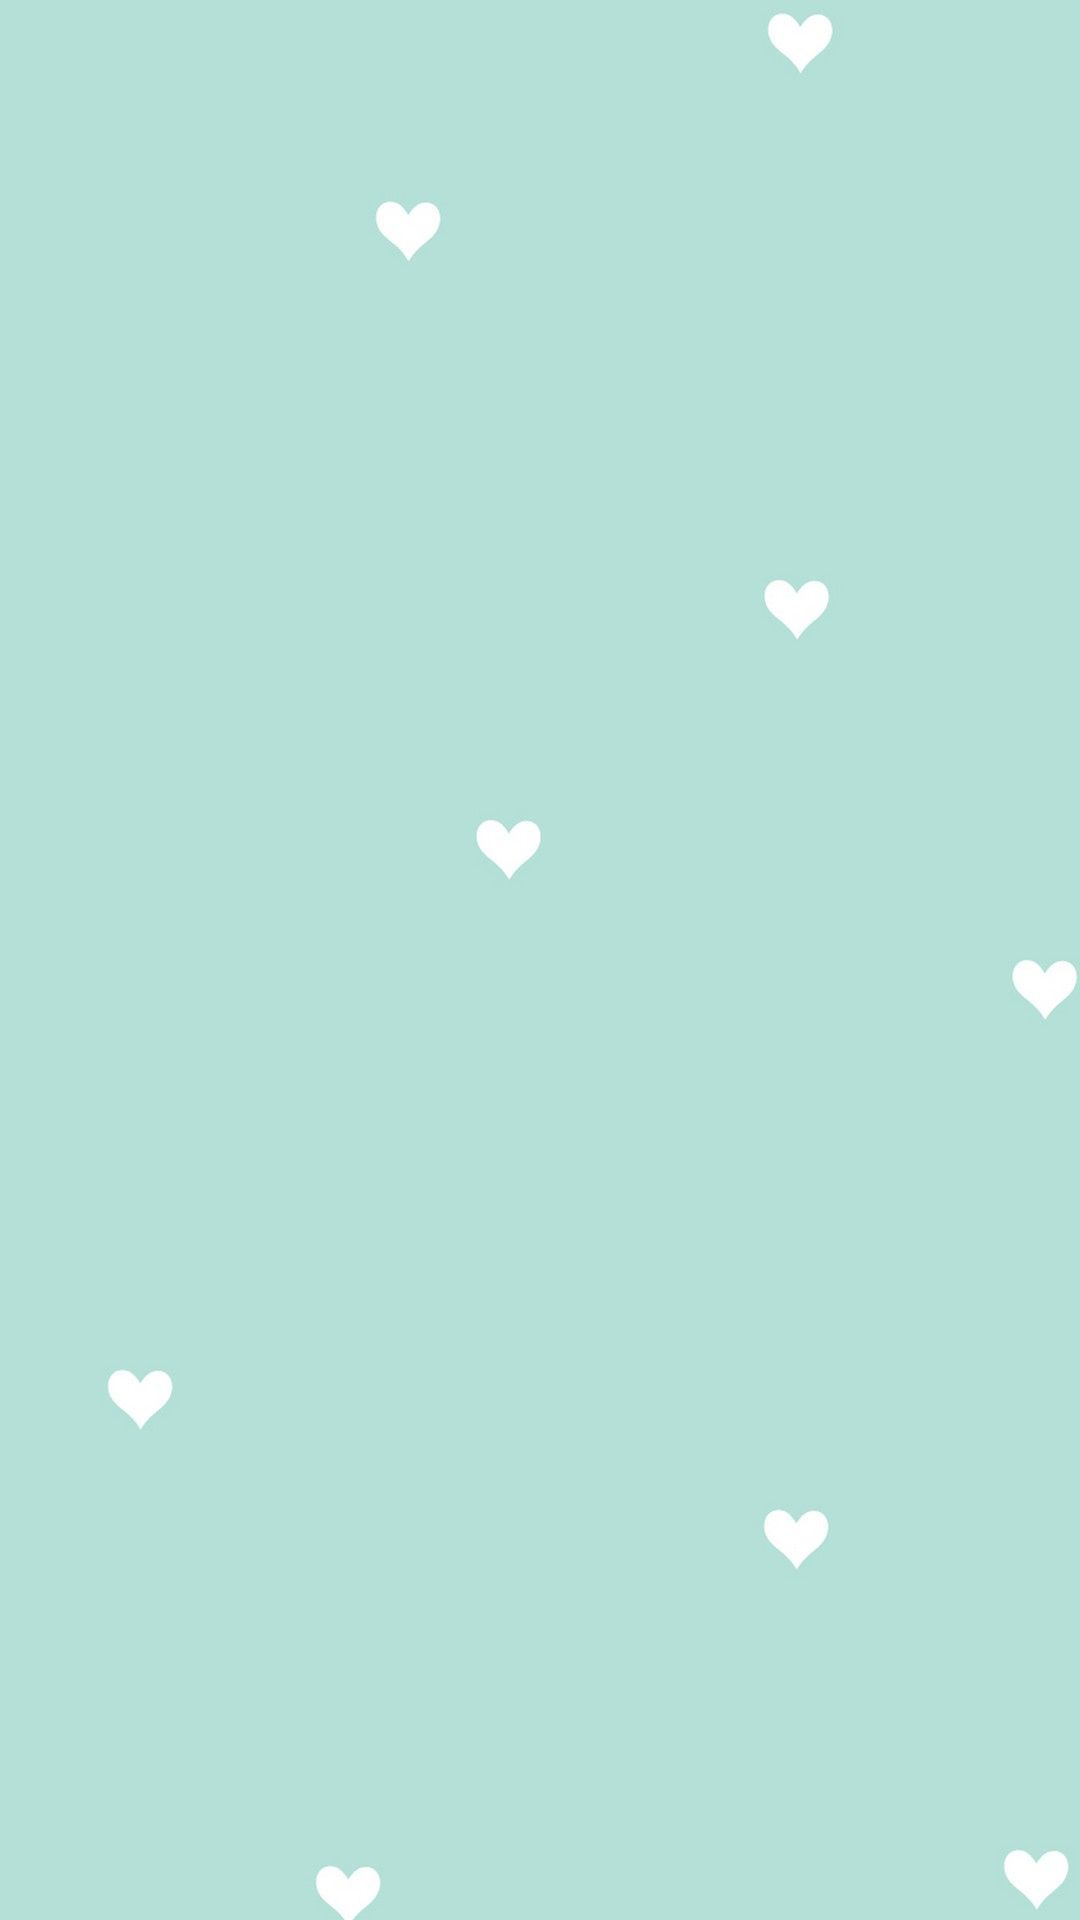 Cute Mint Green Iphone Wallpapers Top Free Cute Mint Green Iphone Backgrounds Wallpaperaccess